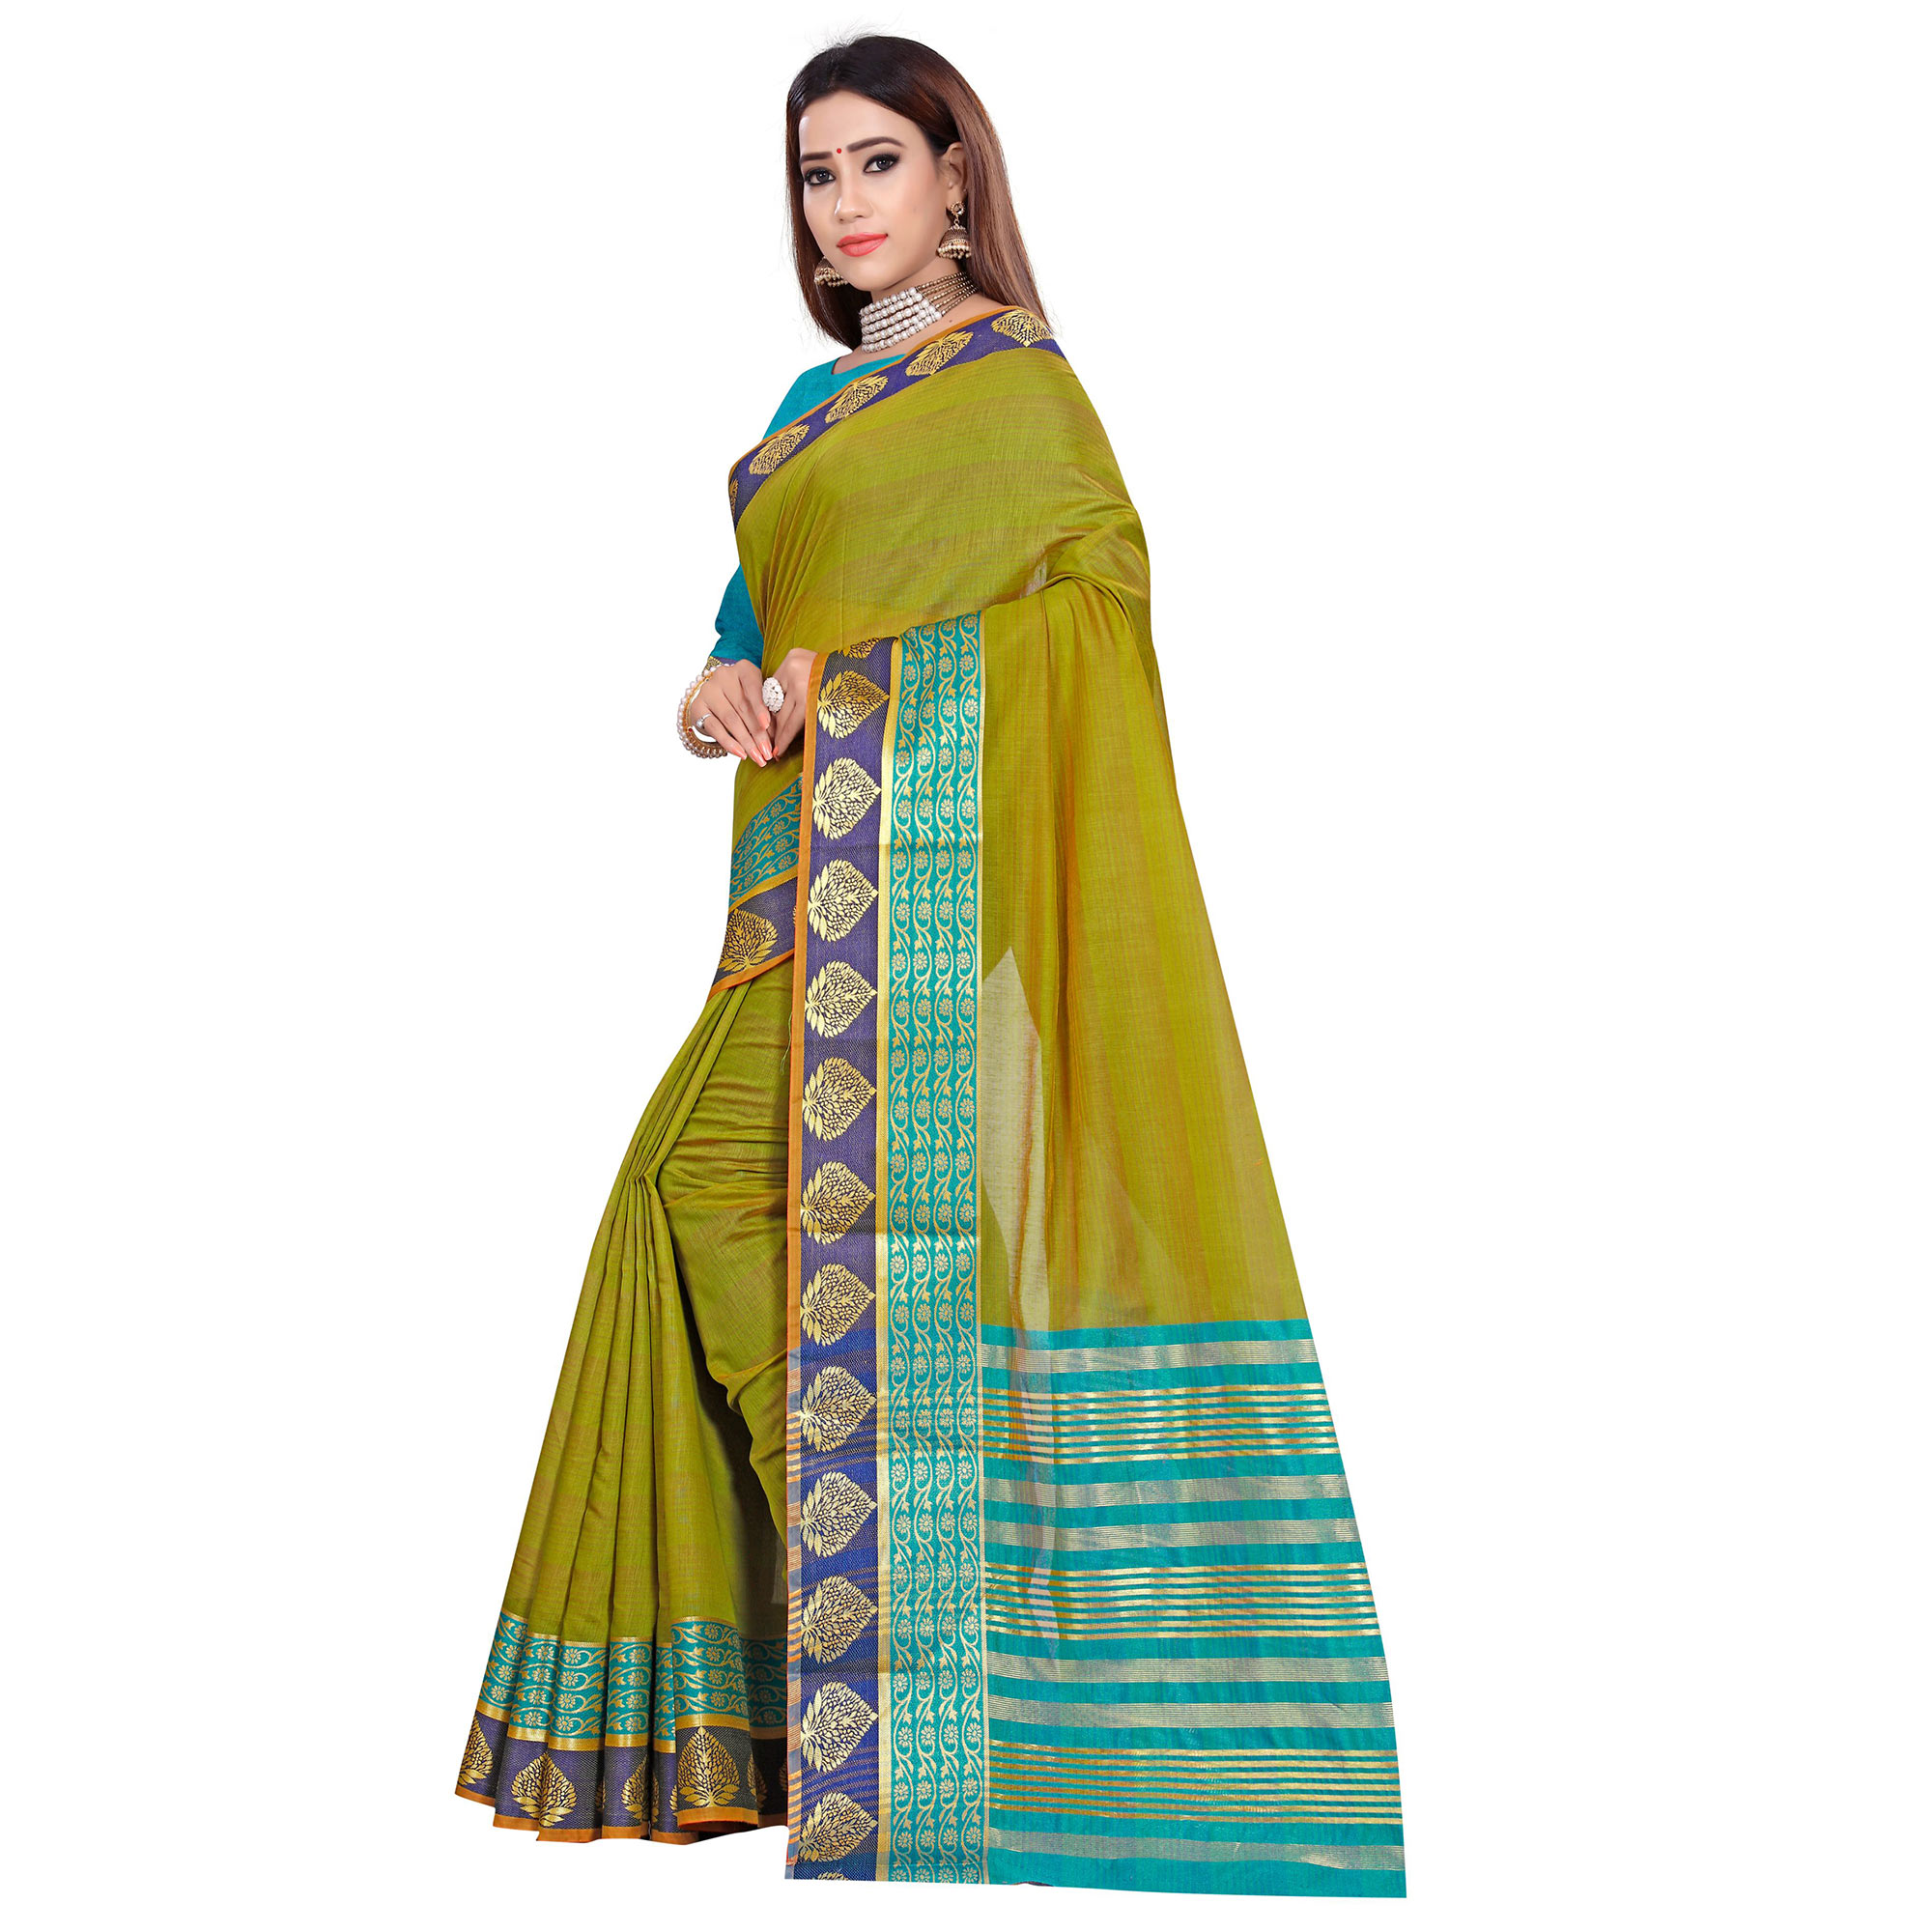 Adorning Olive Green Colored Festive Wear Woven Pure Cotton Saree